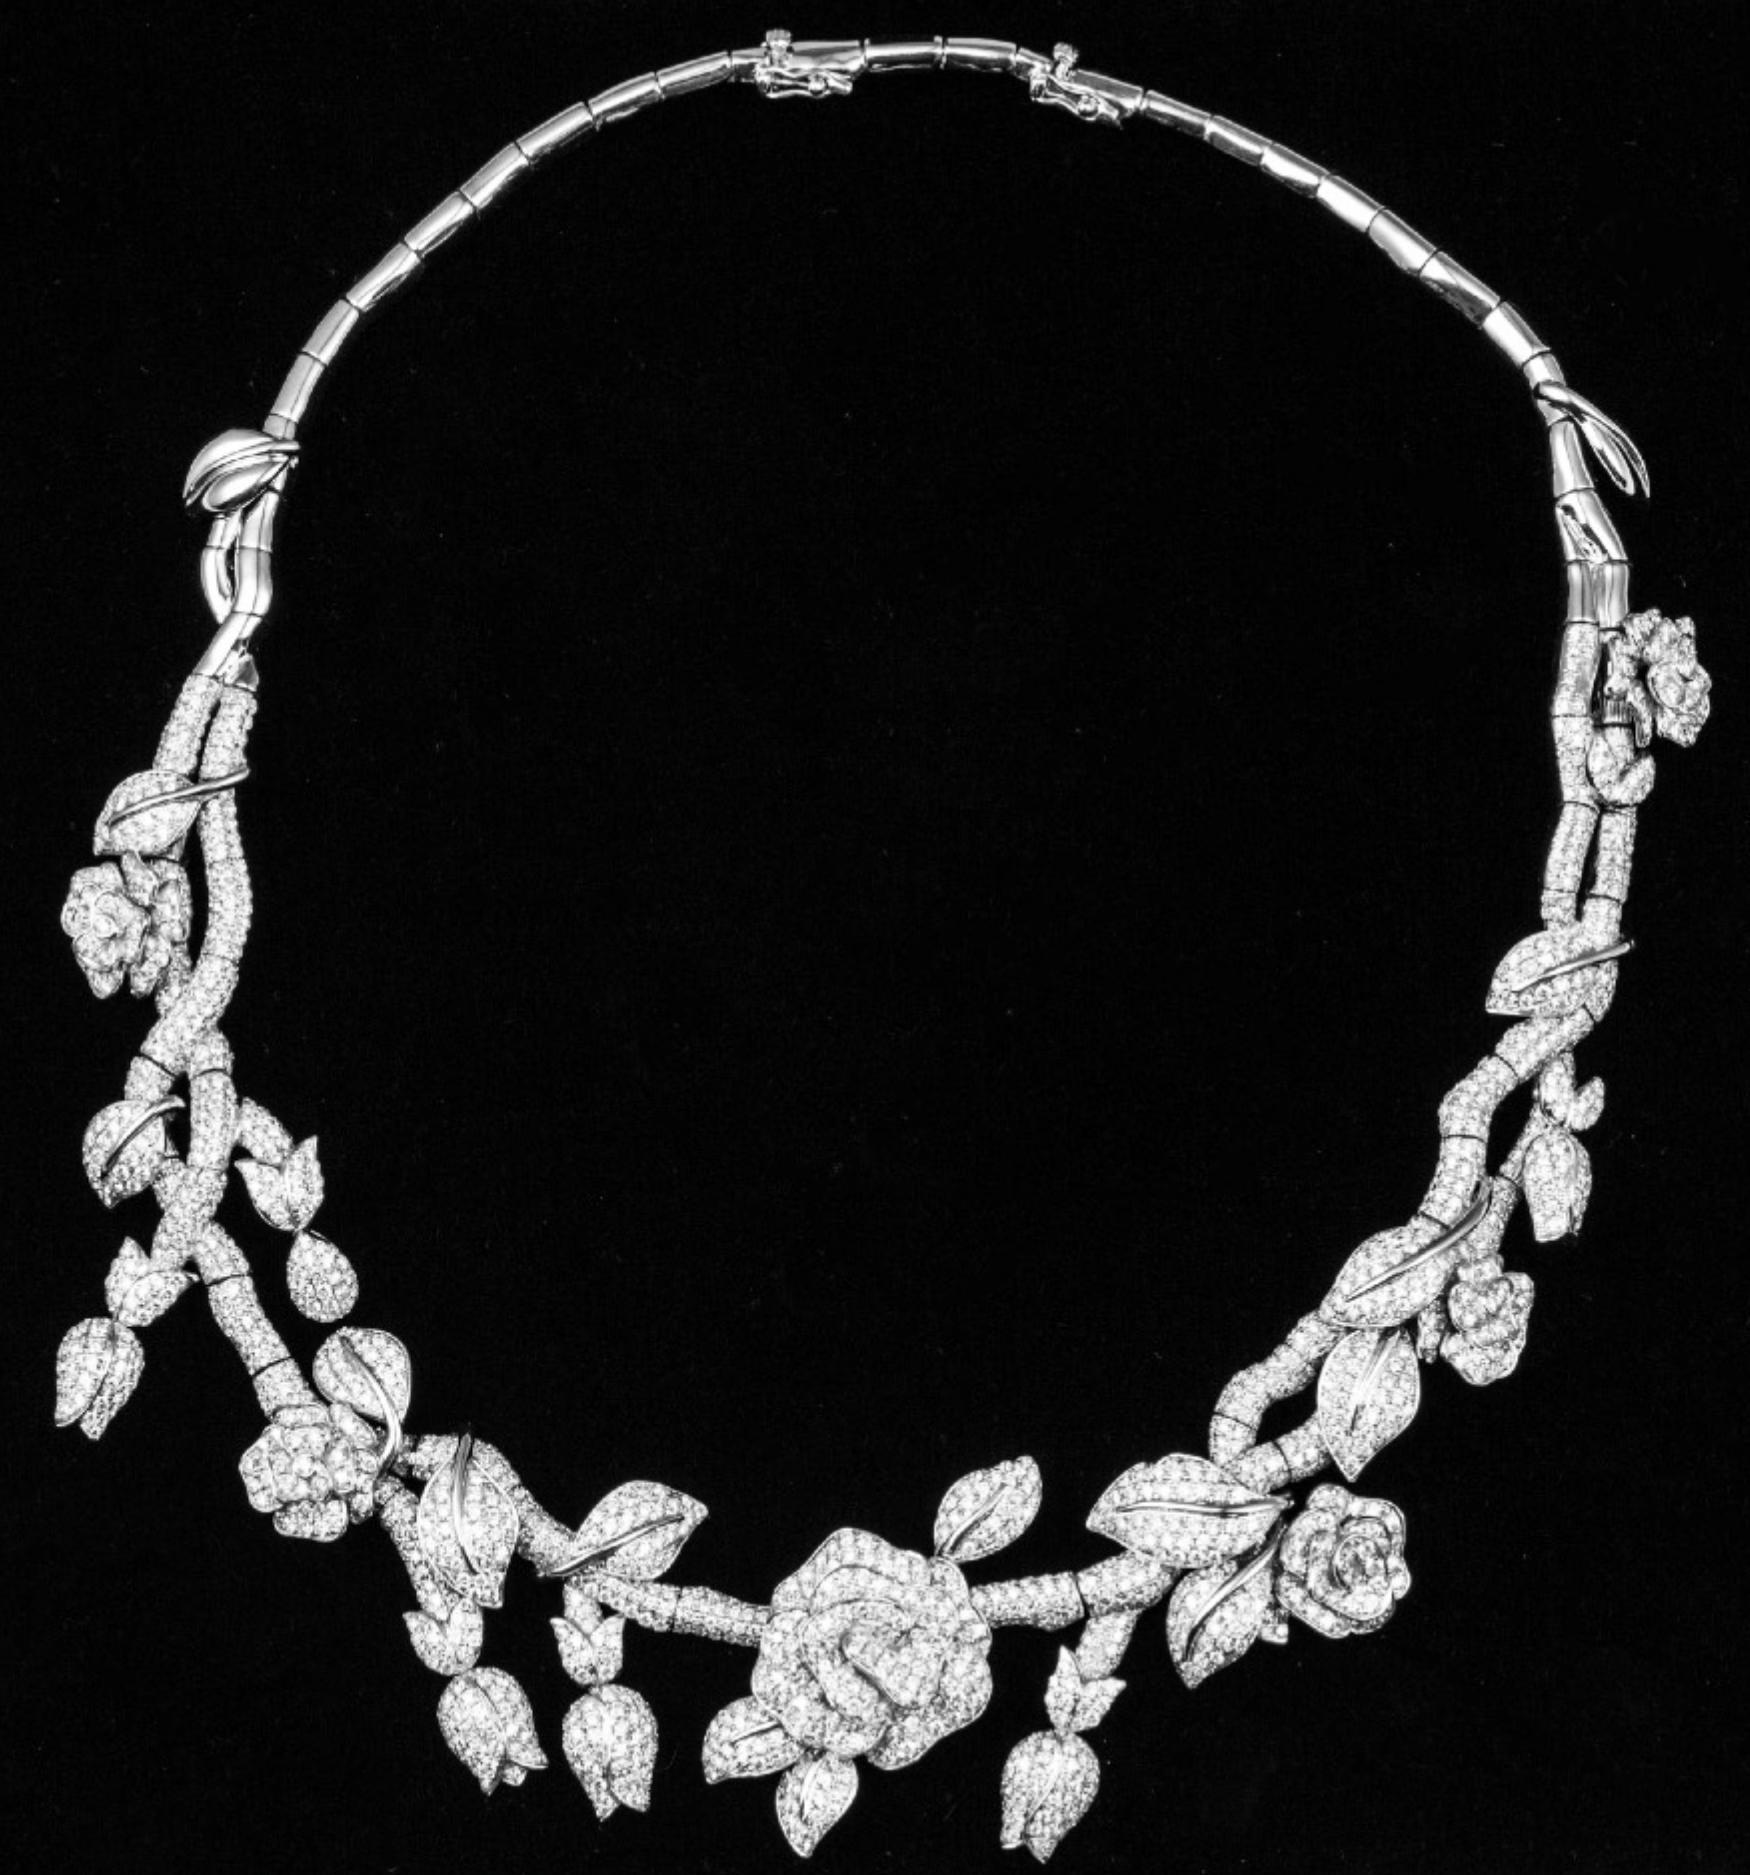 Lot 38 - An Exquisite Design Flower Cluster Necklace and A pair of Diamond Earrings Set